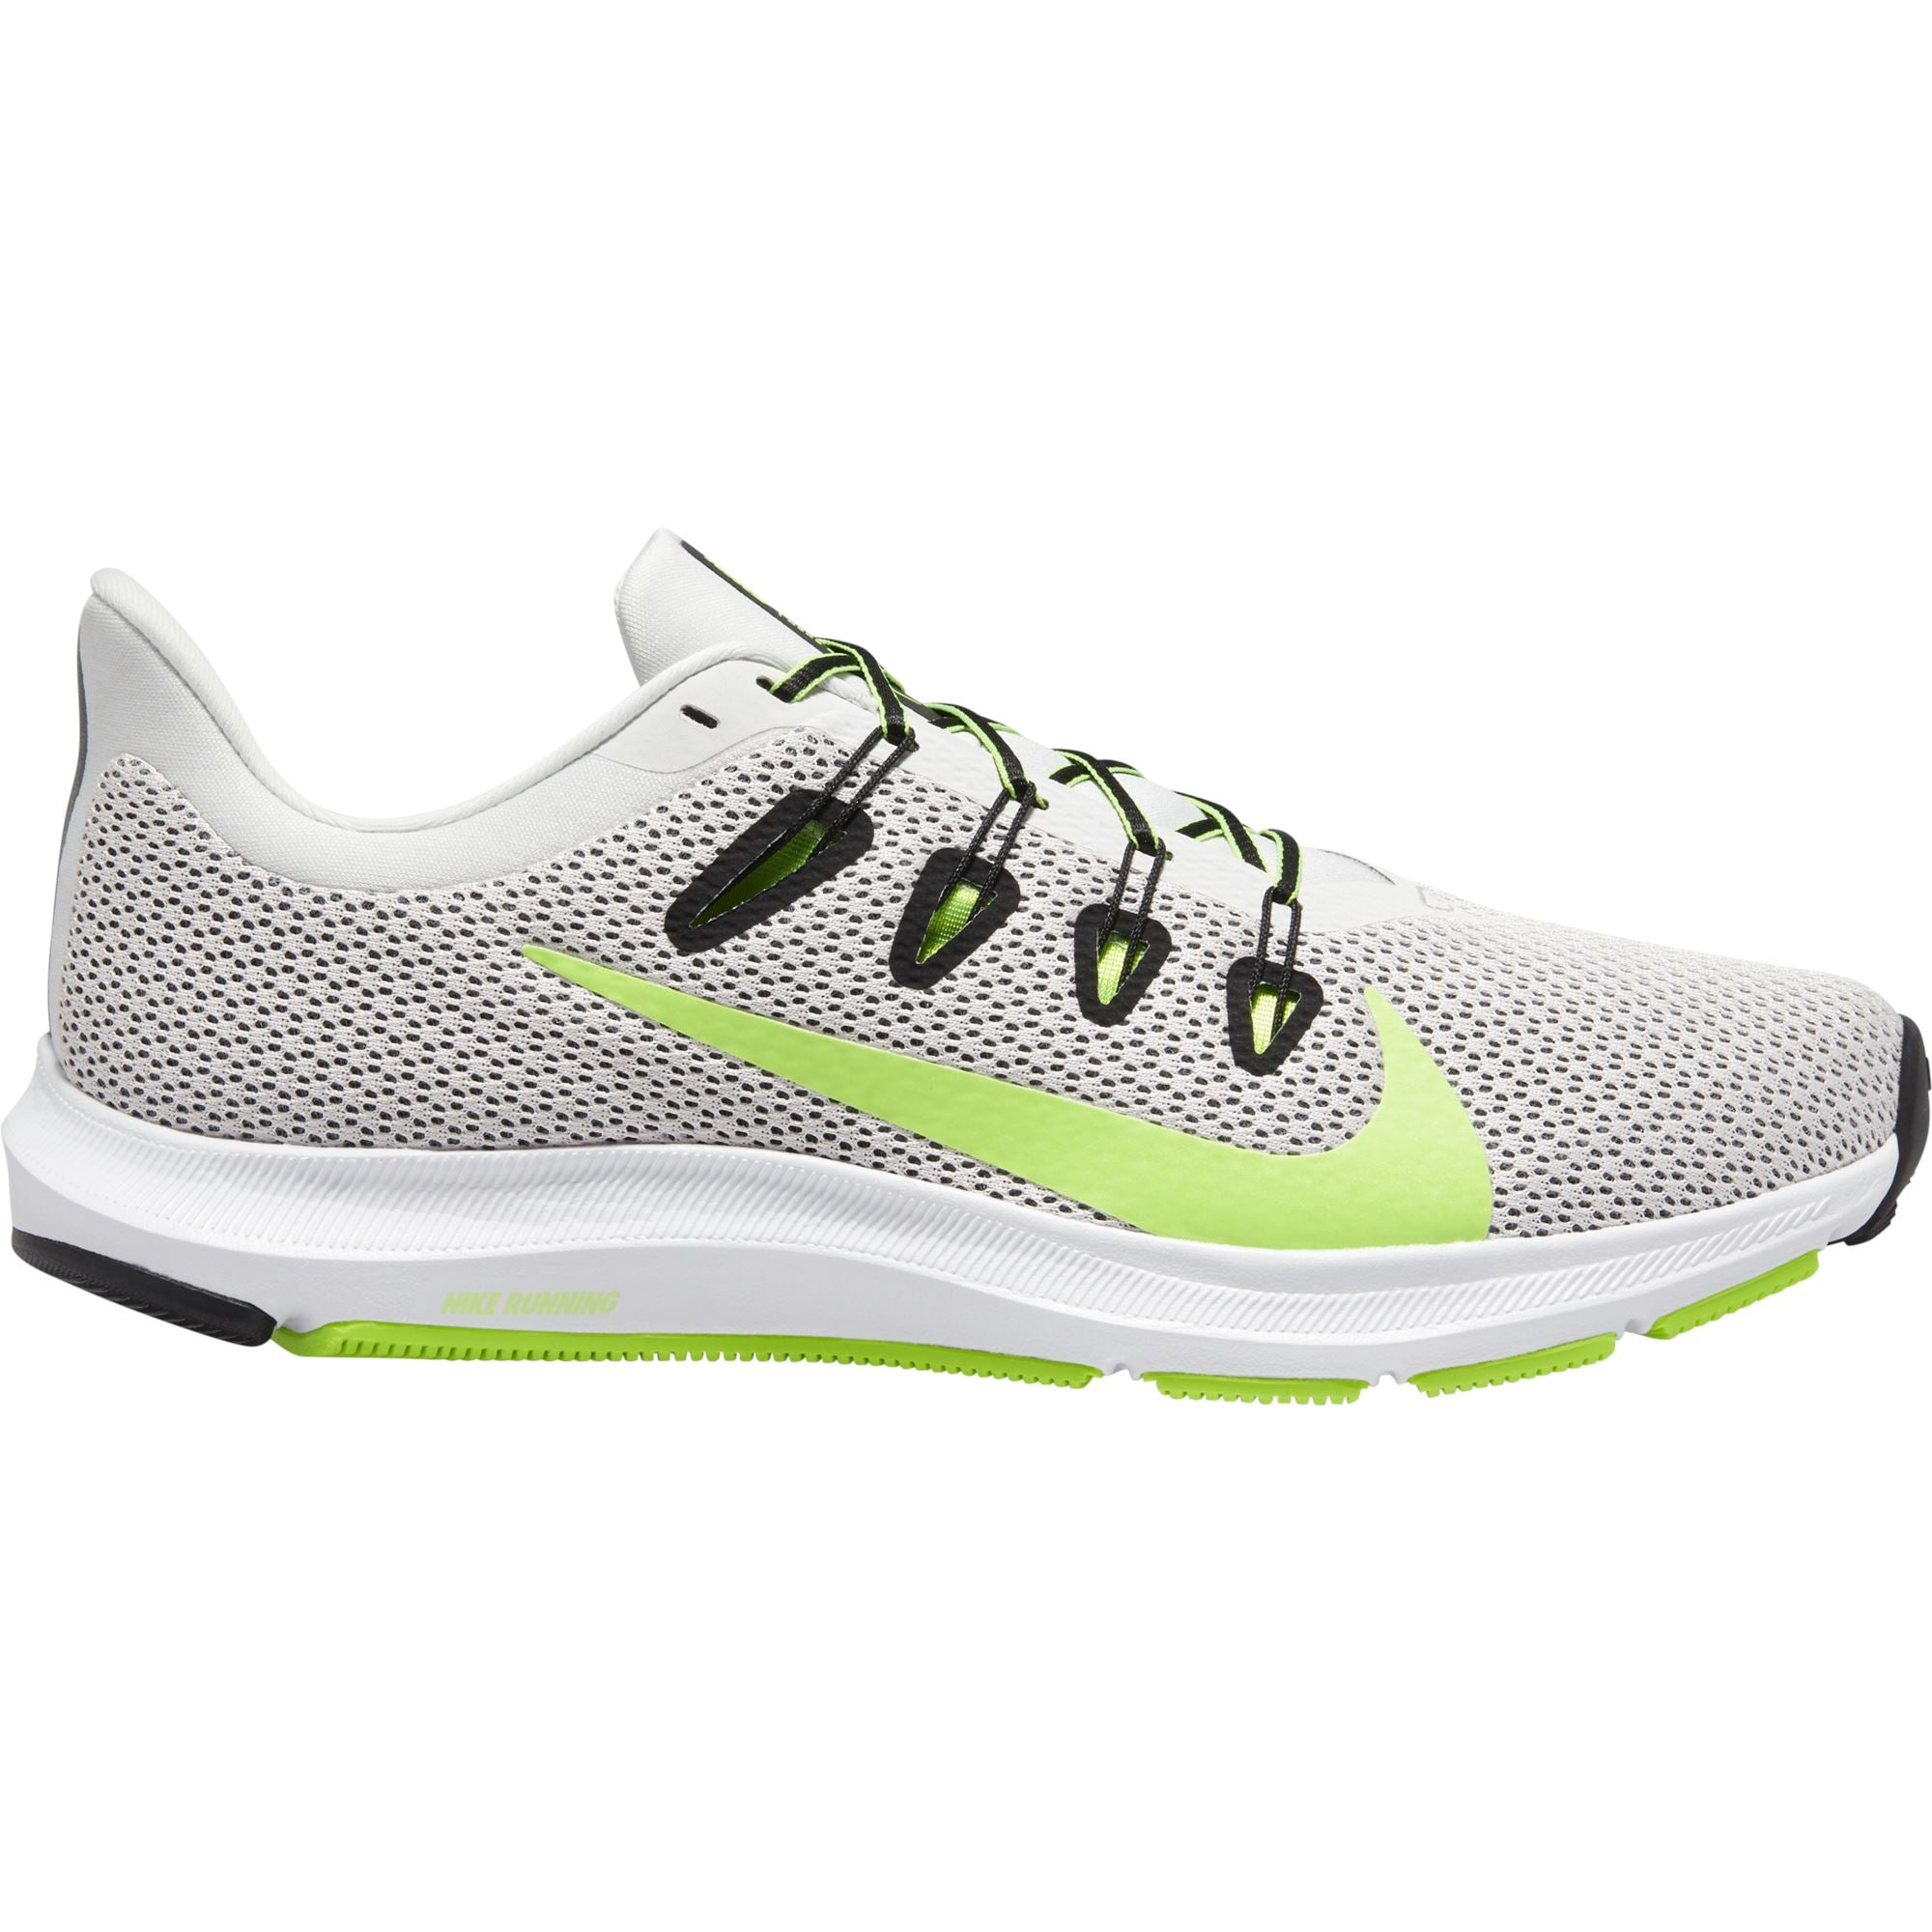 Nike Mens Quest 2 - Platinum Tint/Electric Green-Black-White Q3NIKE Nike